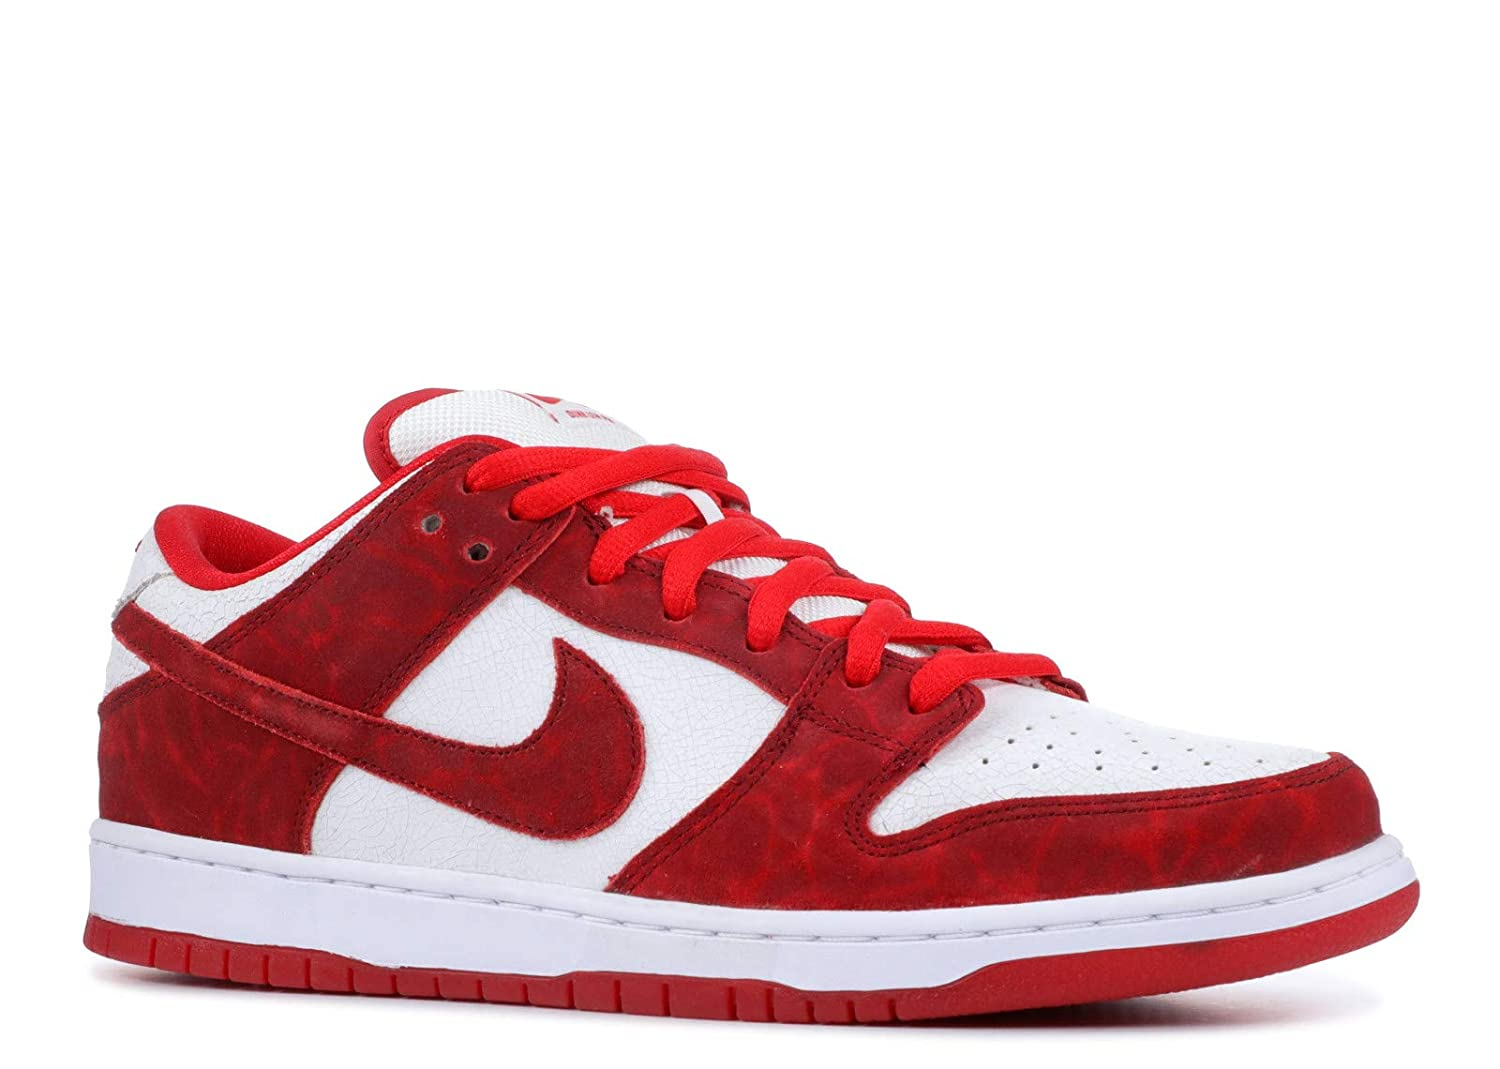 outlet store 37b35 0cfd4 Nike Dunk Low Premium SB 'Valentine's Day' - 313170-662 ...